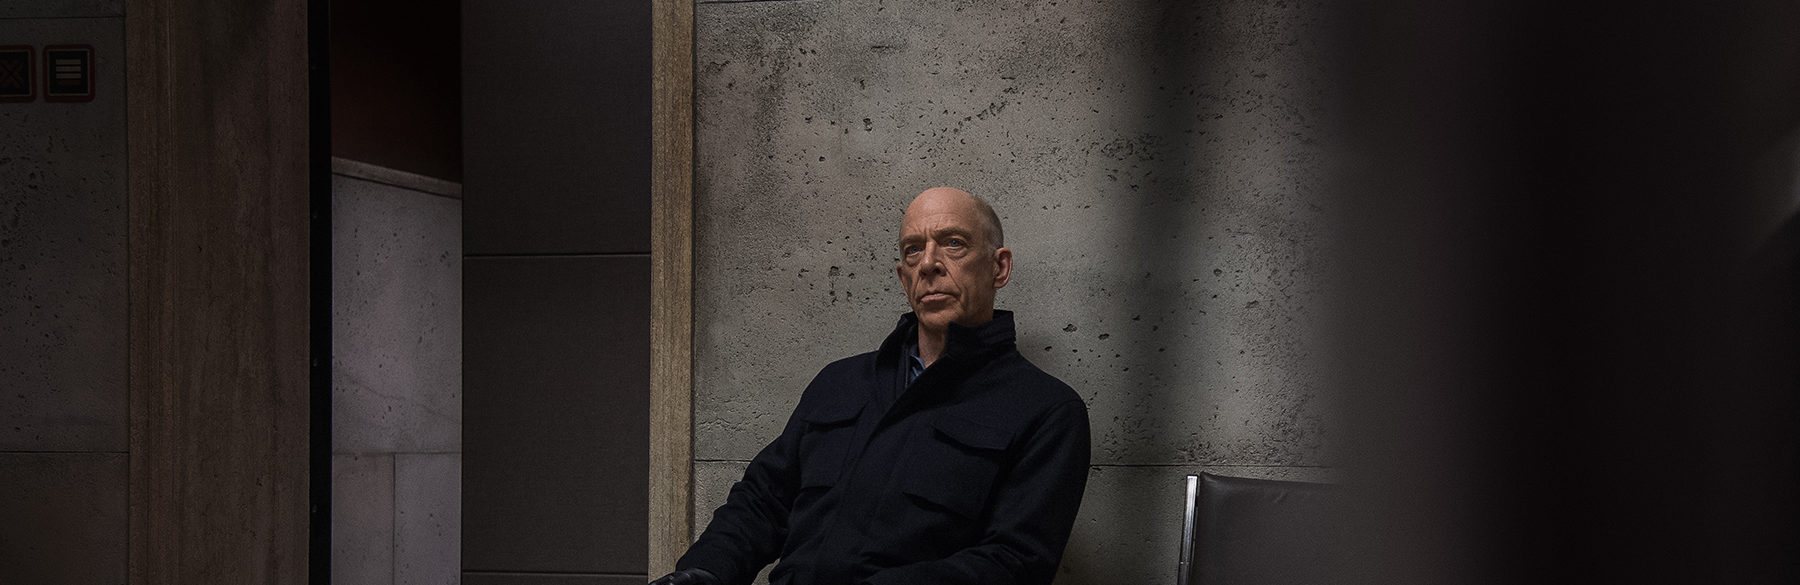 'Counterpart' Asks: What If You Could Meet Your Doppelganger?